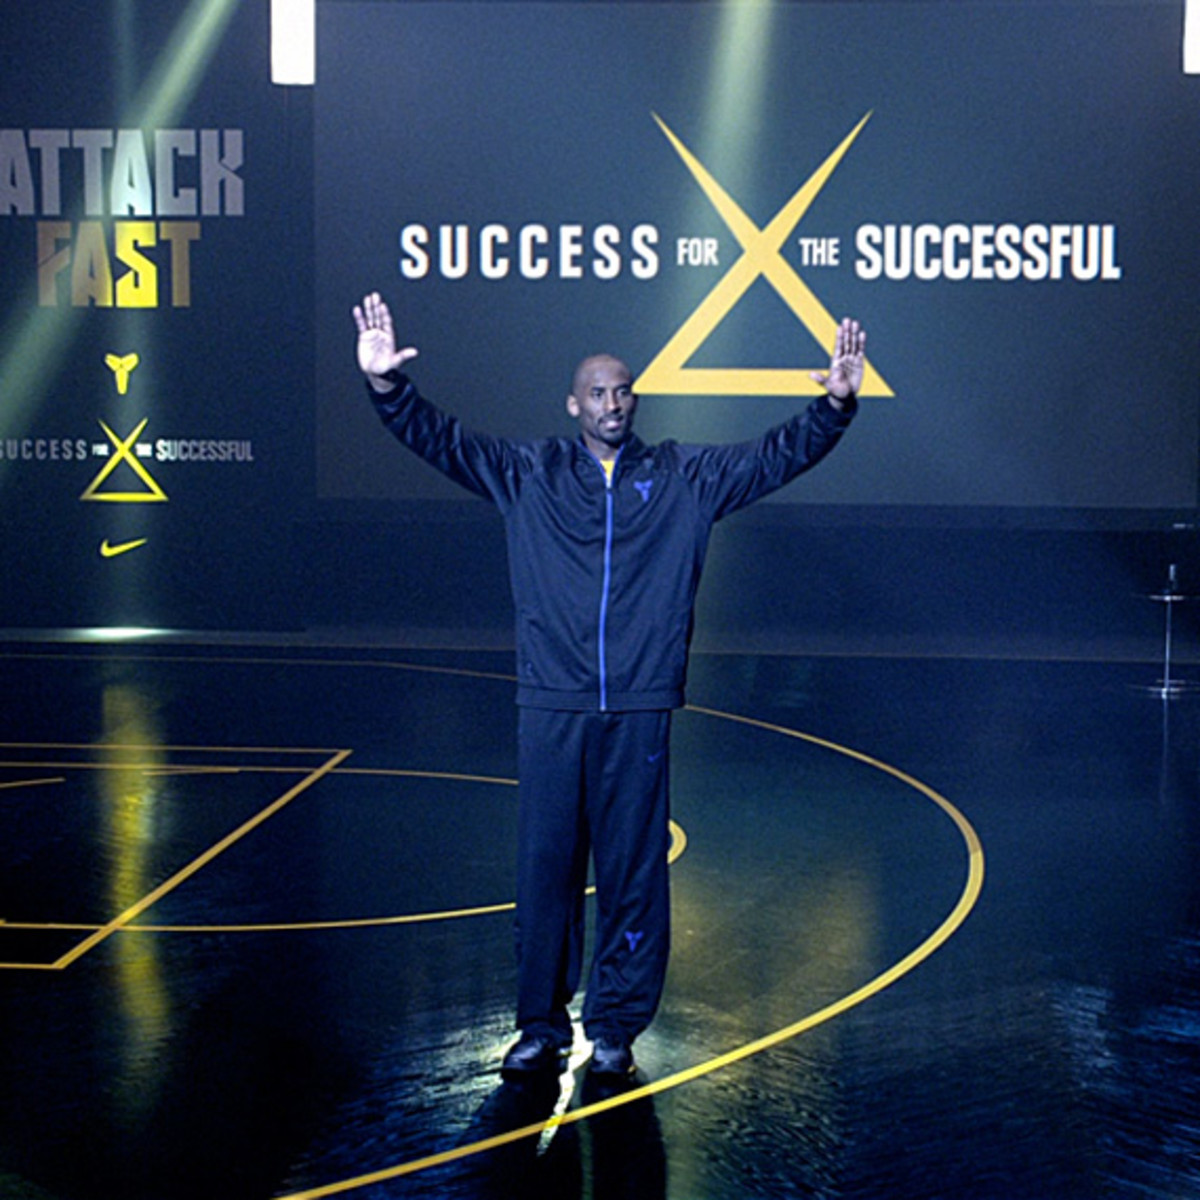 nike-kobesystem-success-for-the-successful-02